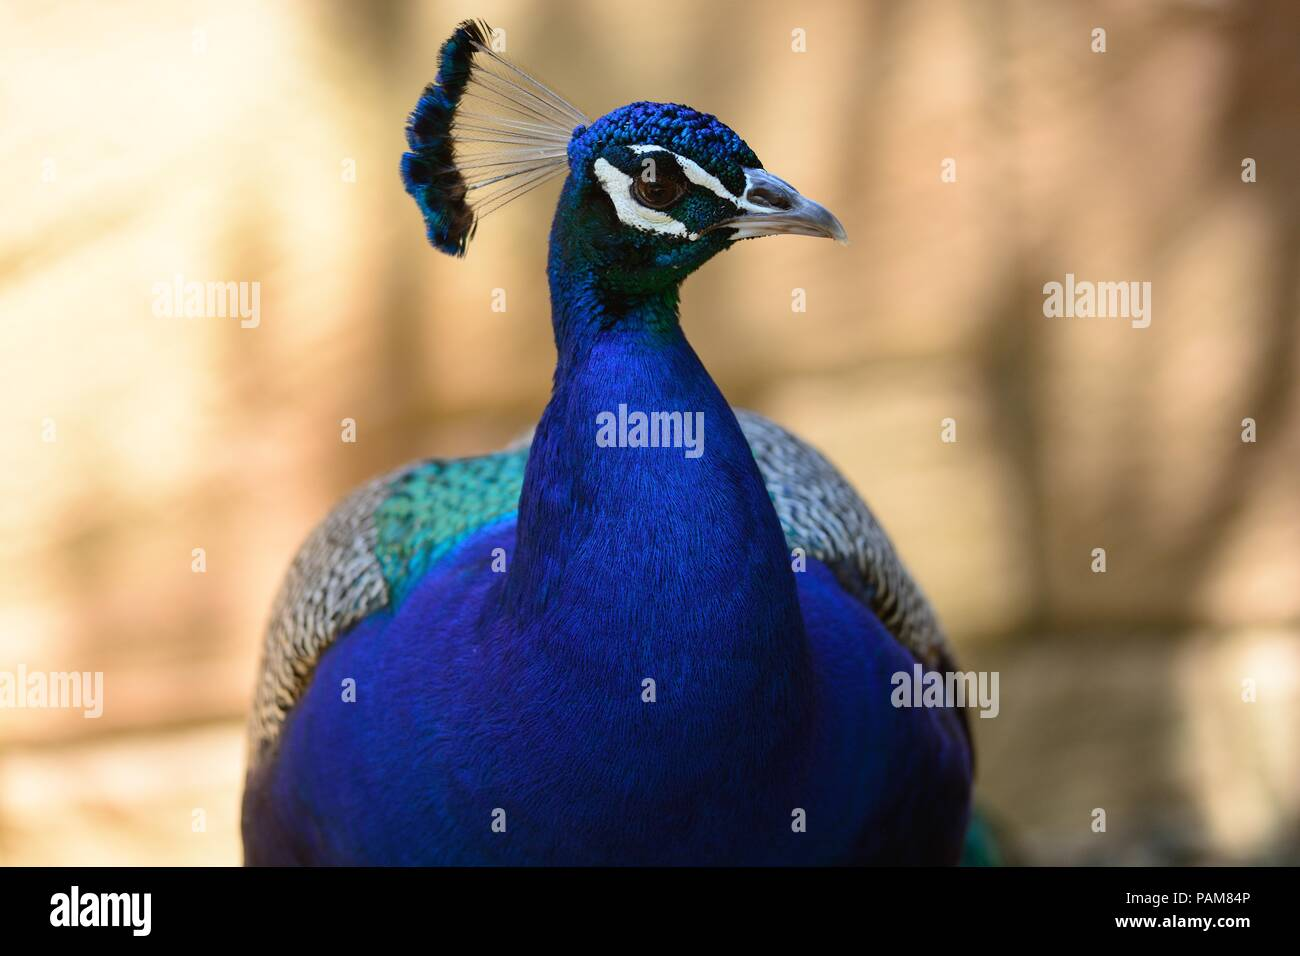 Head shot of a Peacock Photo Stock